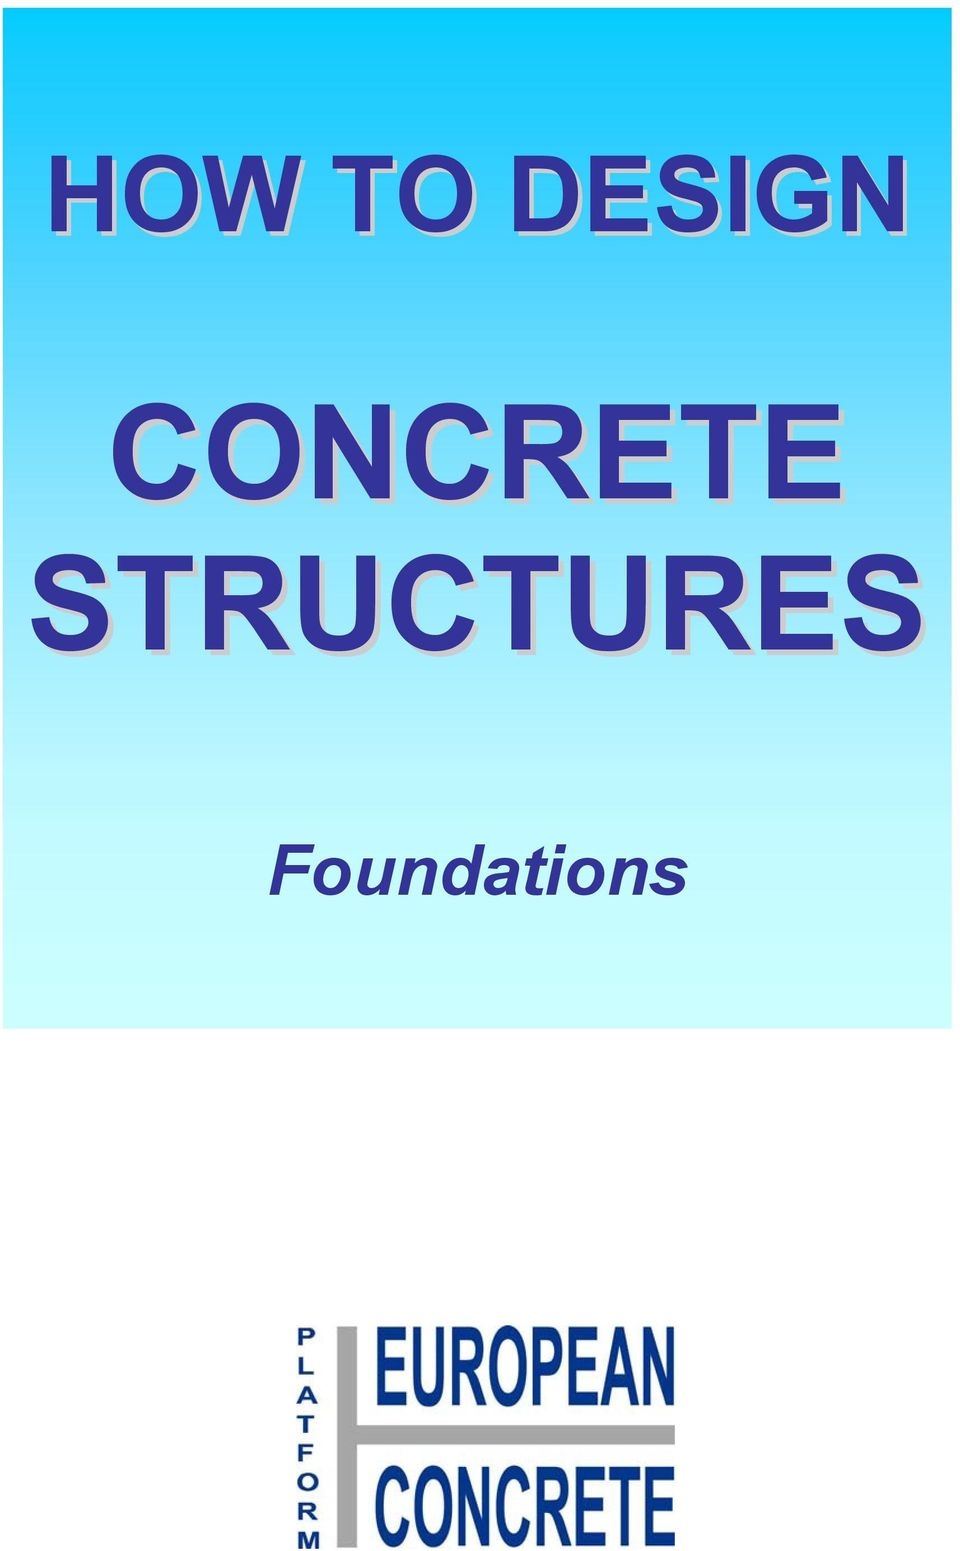 HOW TO DESIGN CONCRETE STRUCTURES Foundations - PDF